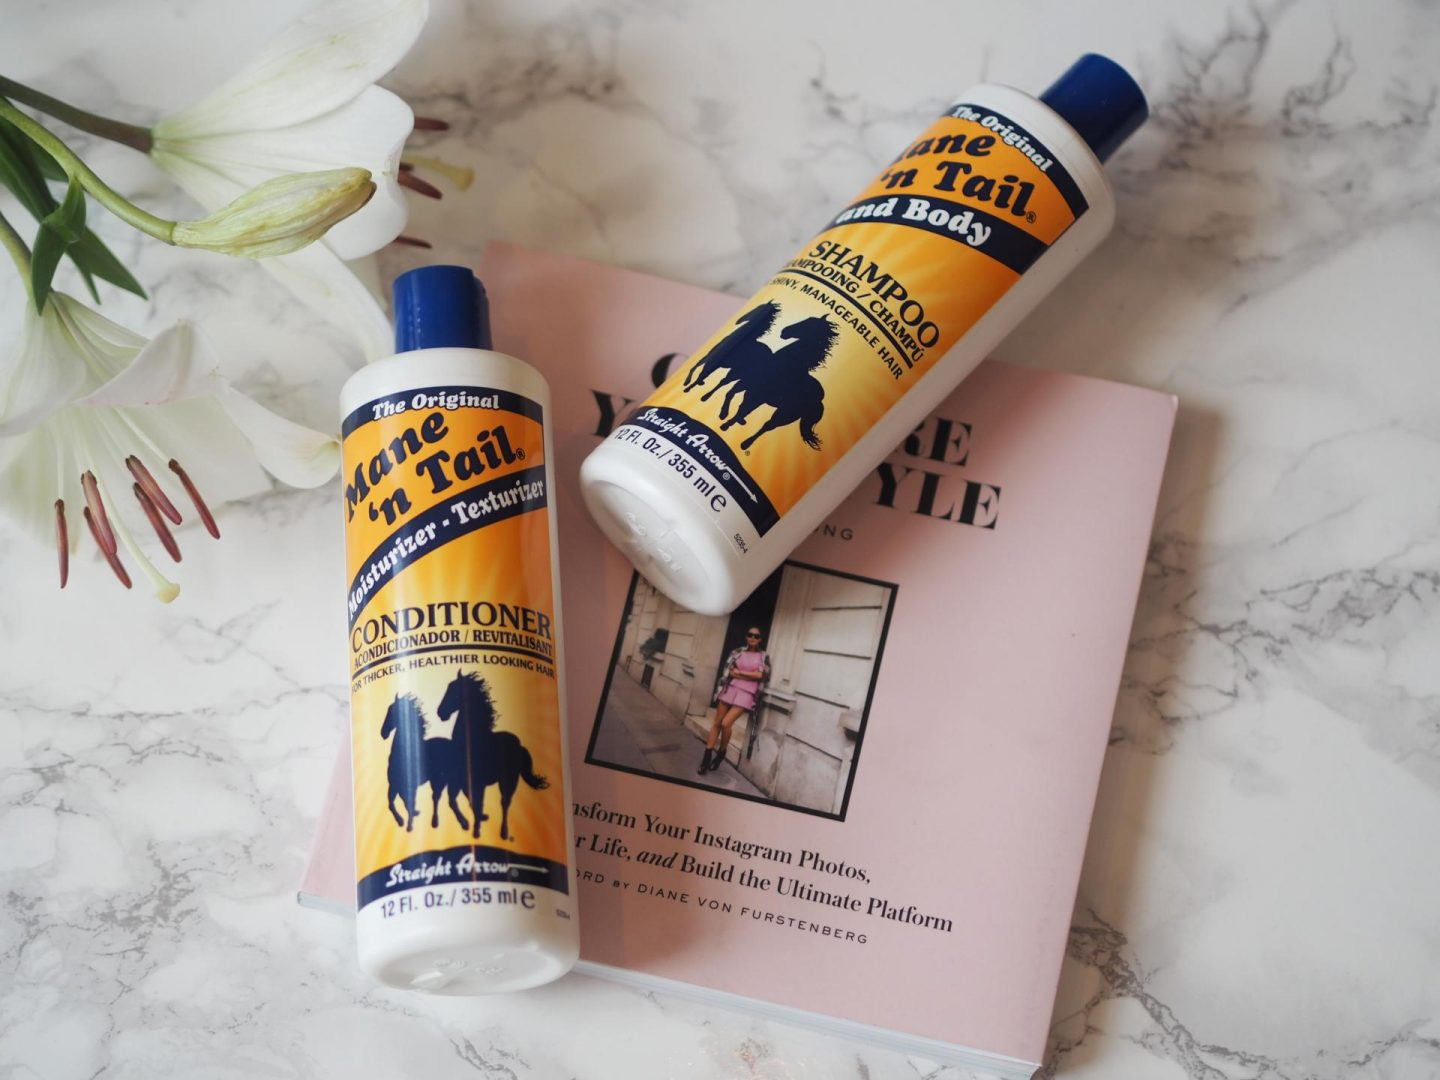 The Original Mane N' Tail Shampoo and Conditioner